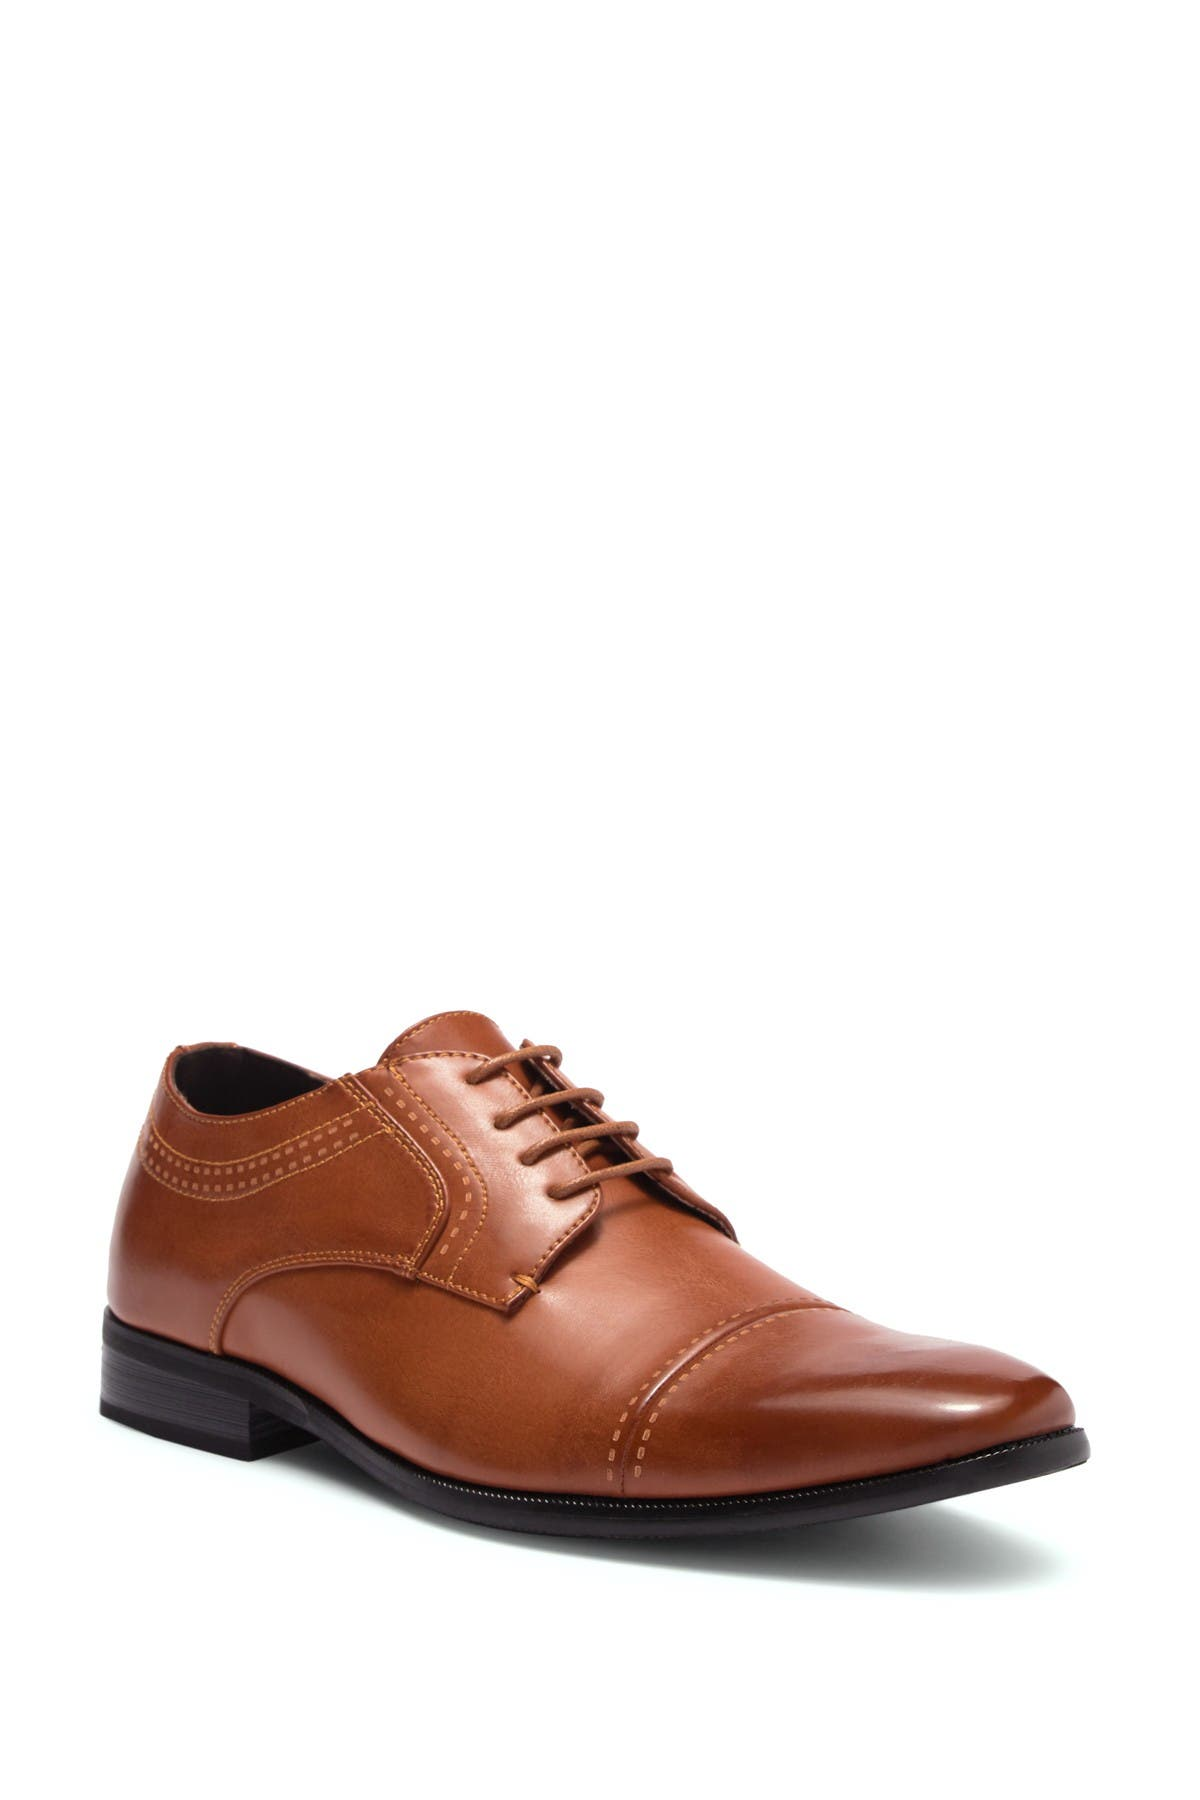 Image of XRAY Fleet Cap Toe Oxford